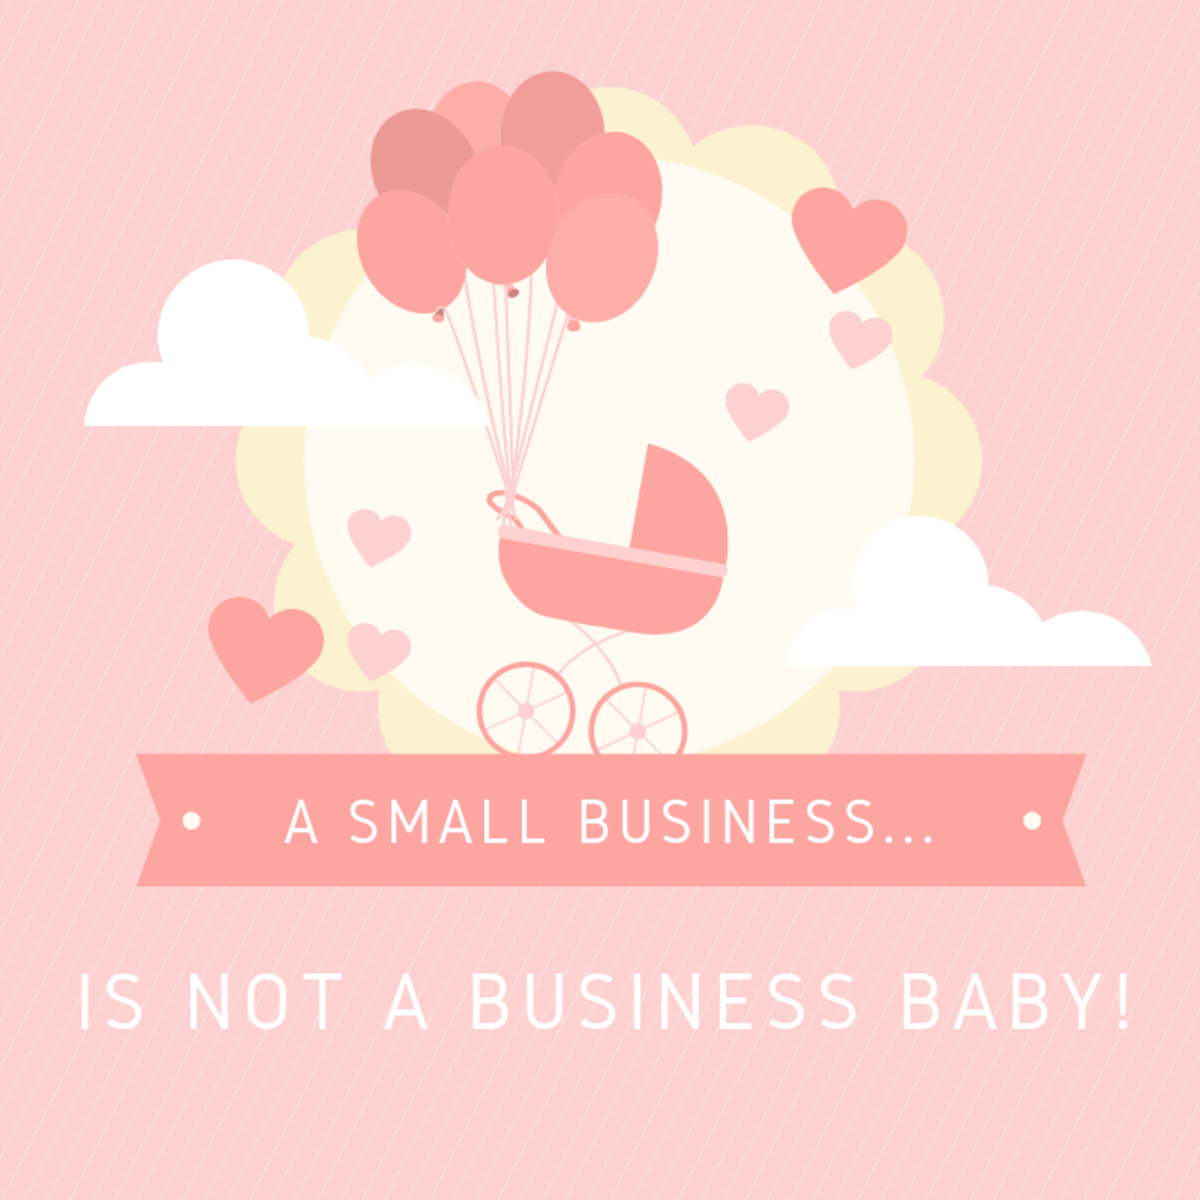 A Small Business Is Not a Business Baby